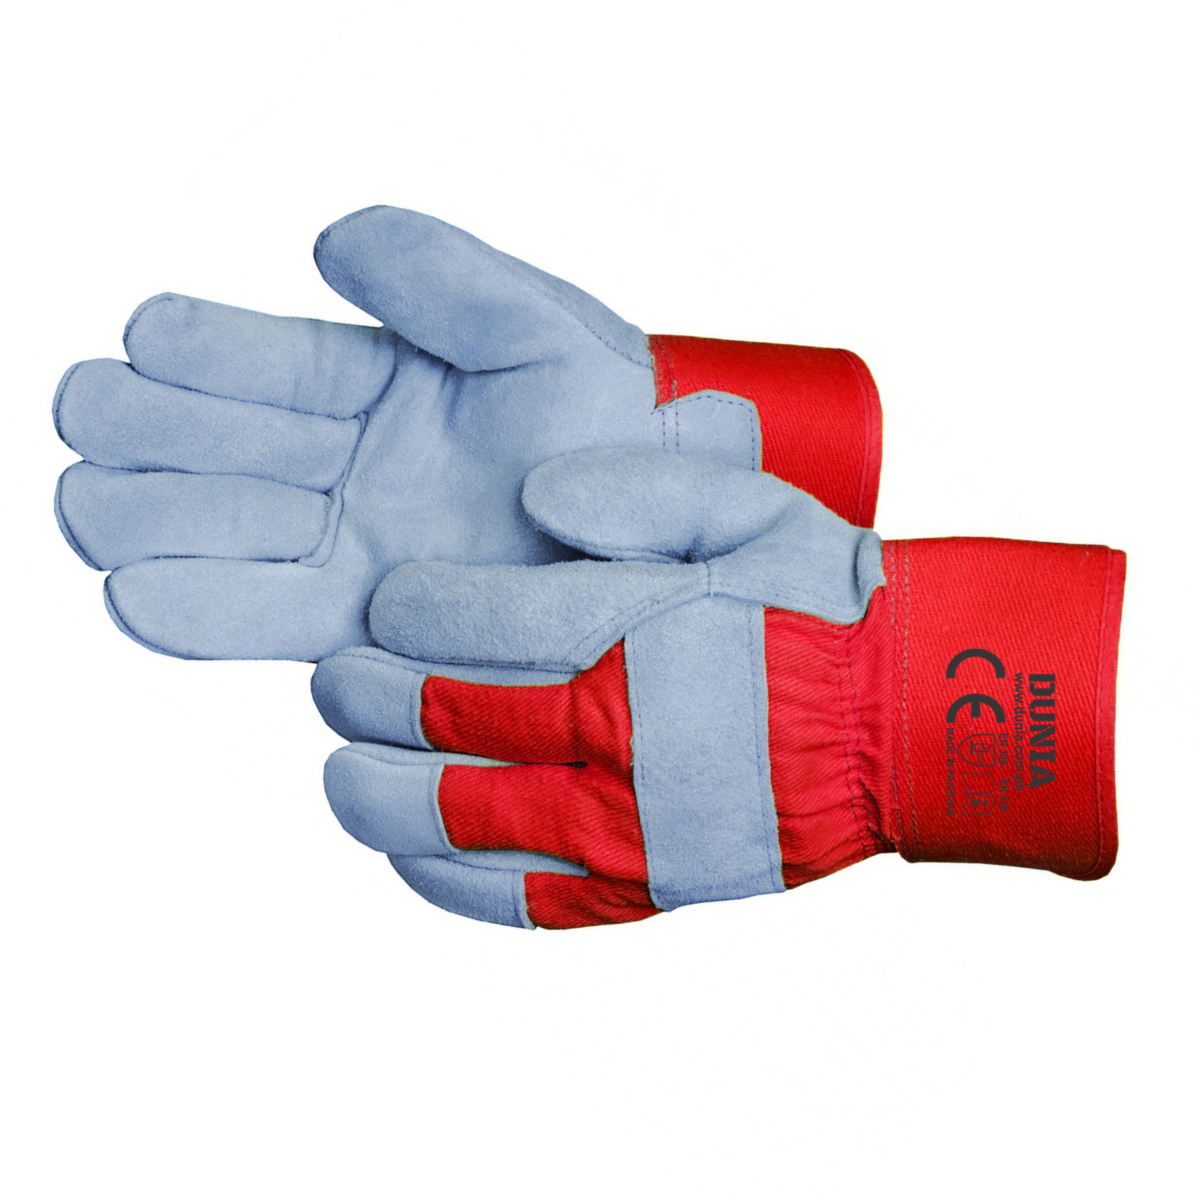 DTC-738-R Leather Work Gloves